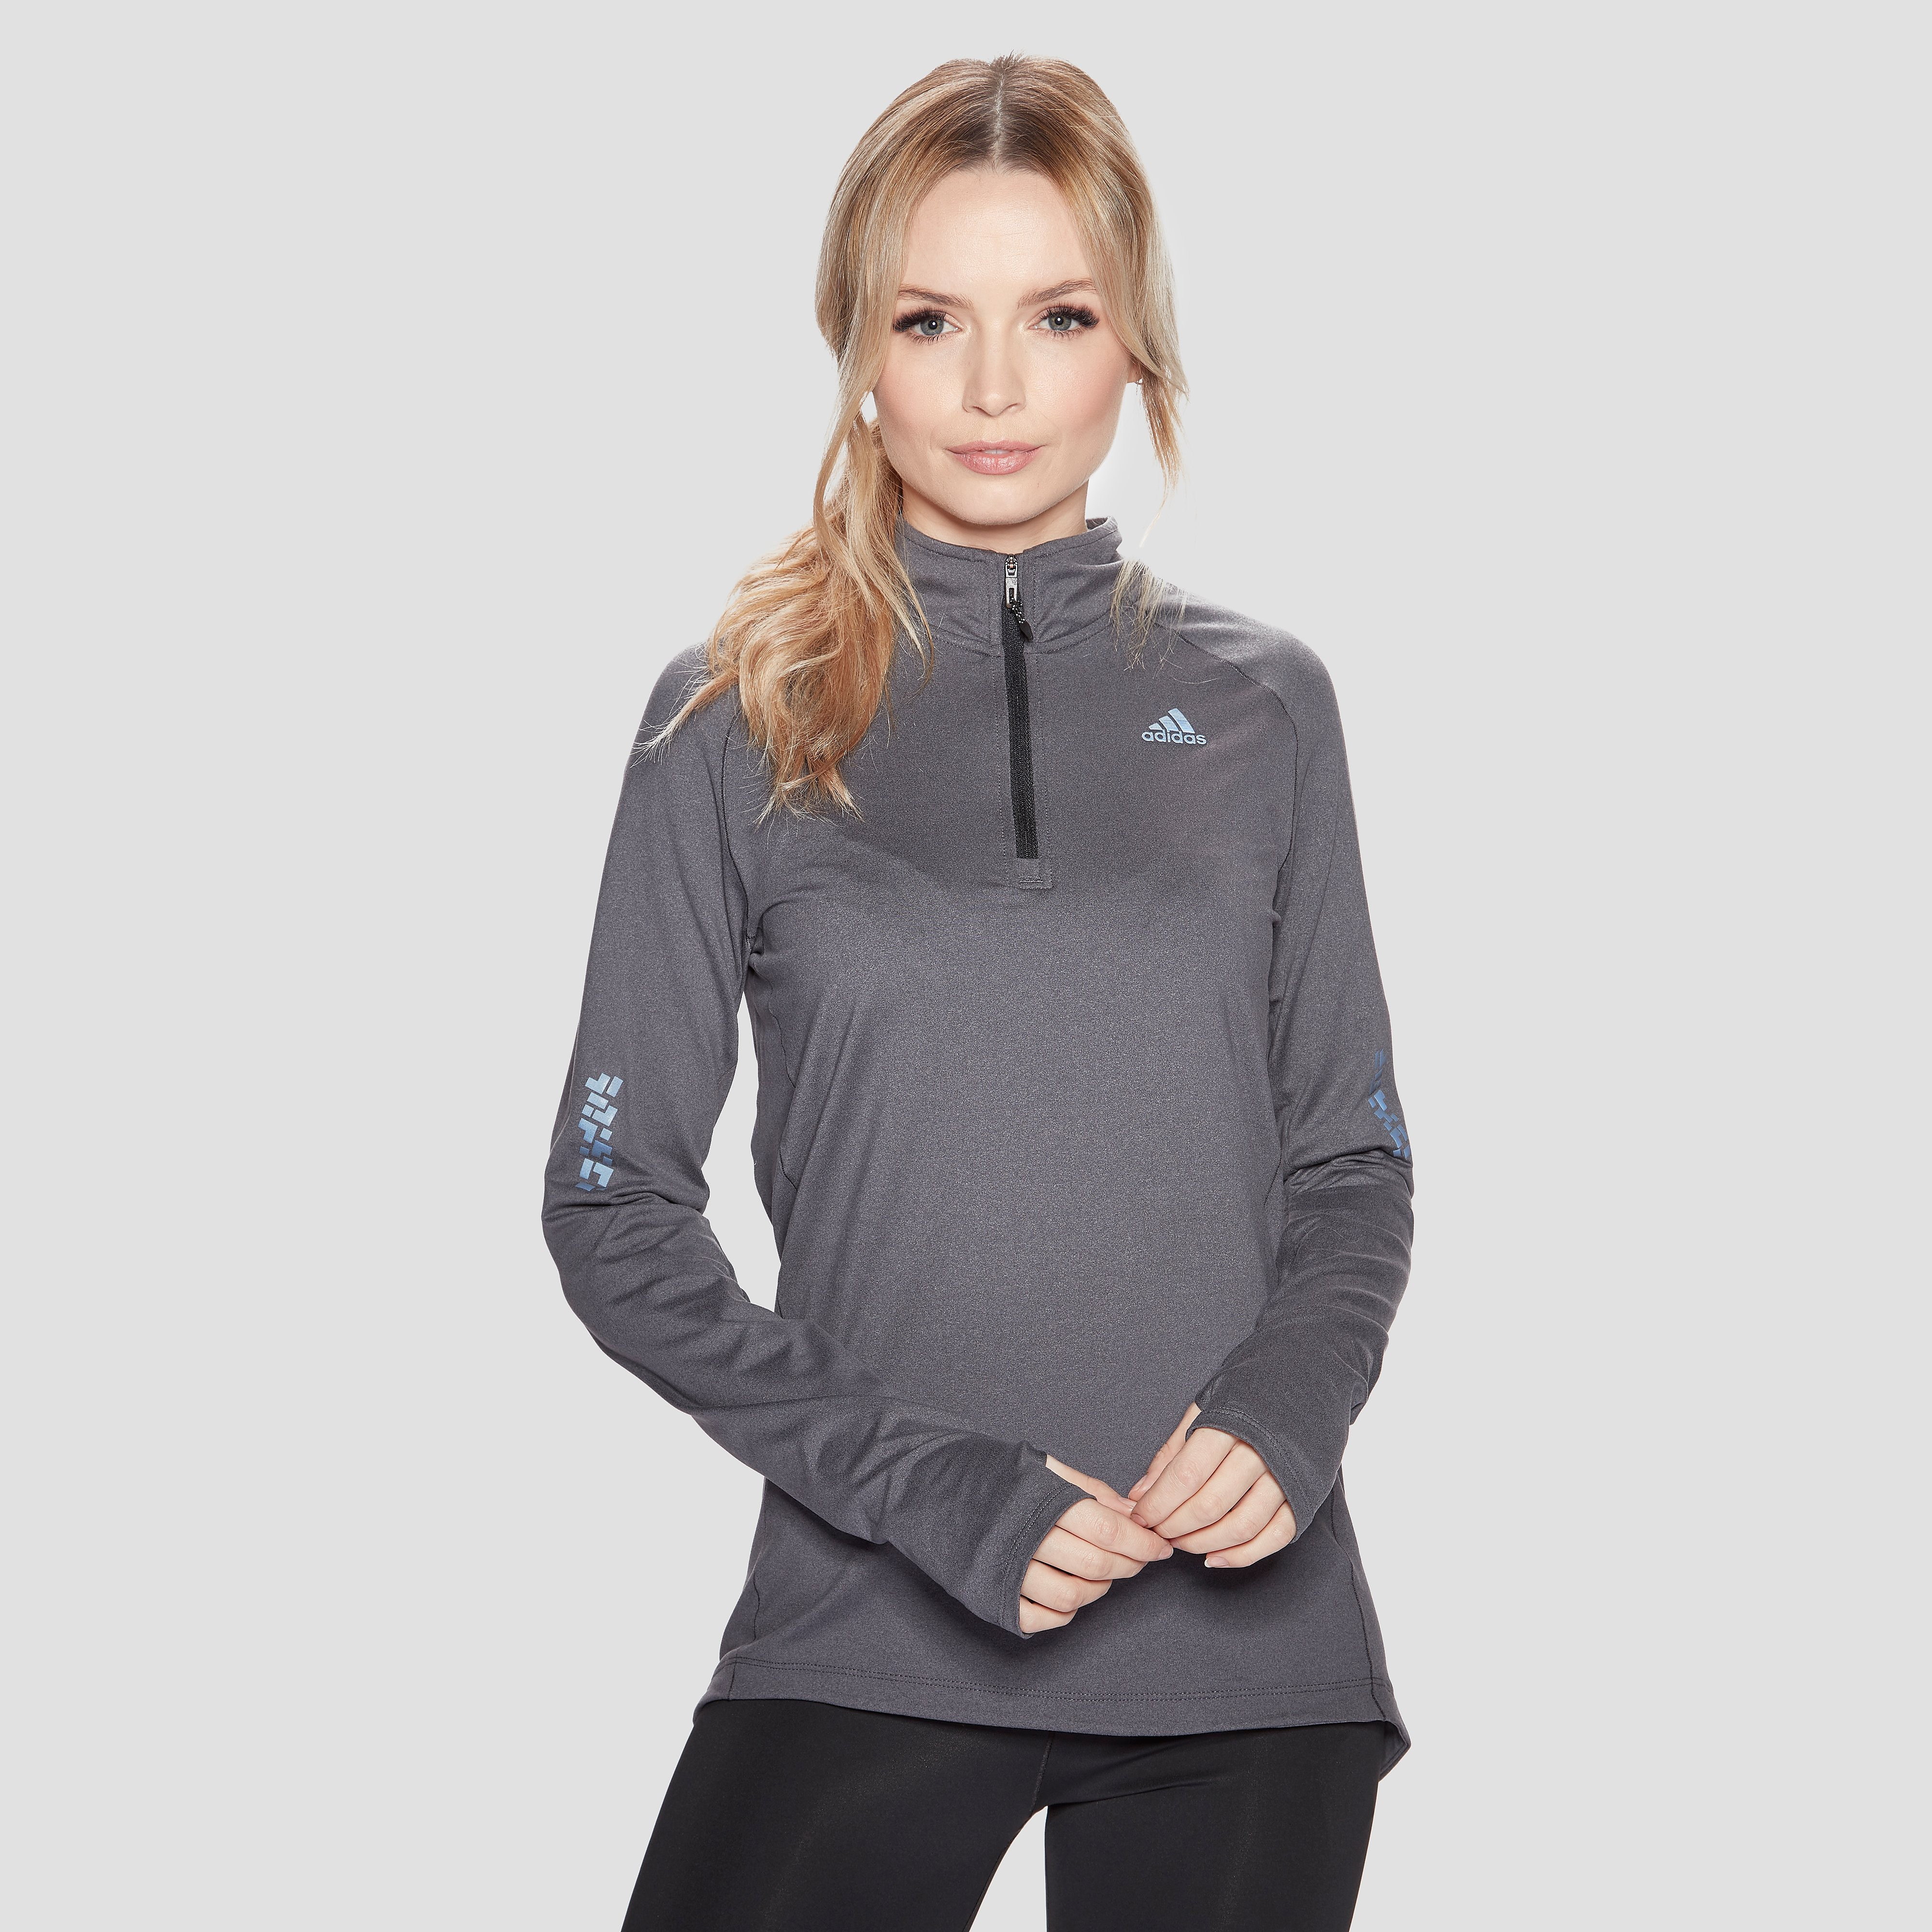 adidas Women's Supernova 1/2 Zip Long Sleeve Top